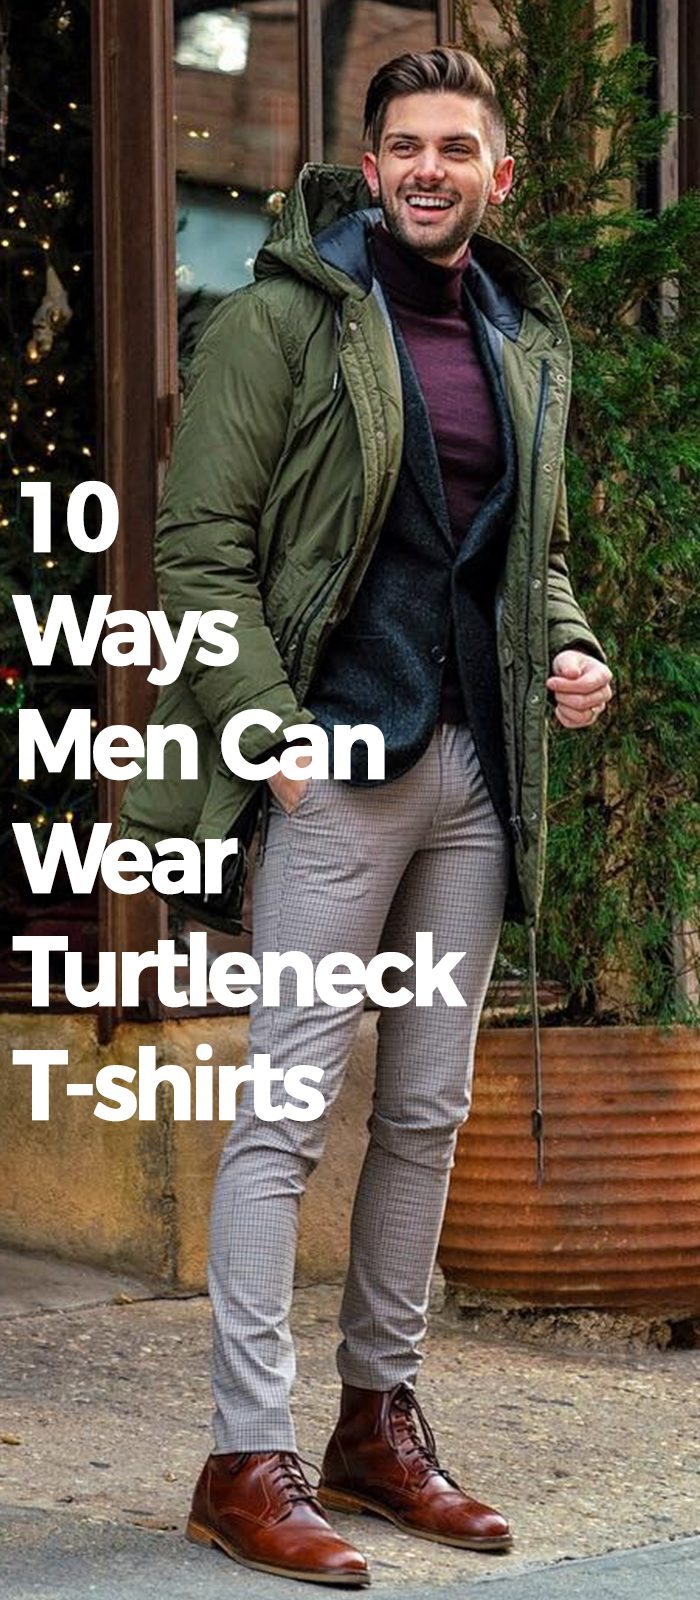 10 Ways Men Can Wear Turtleneck T-shirts!